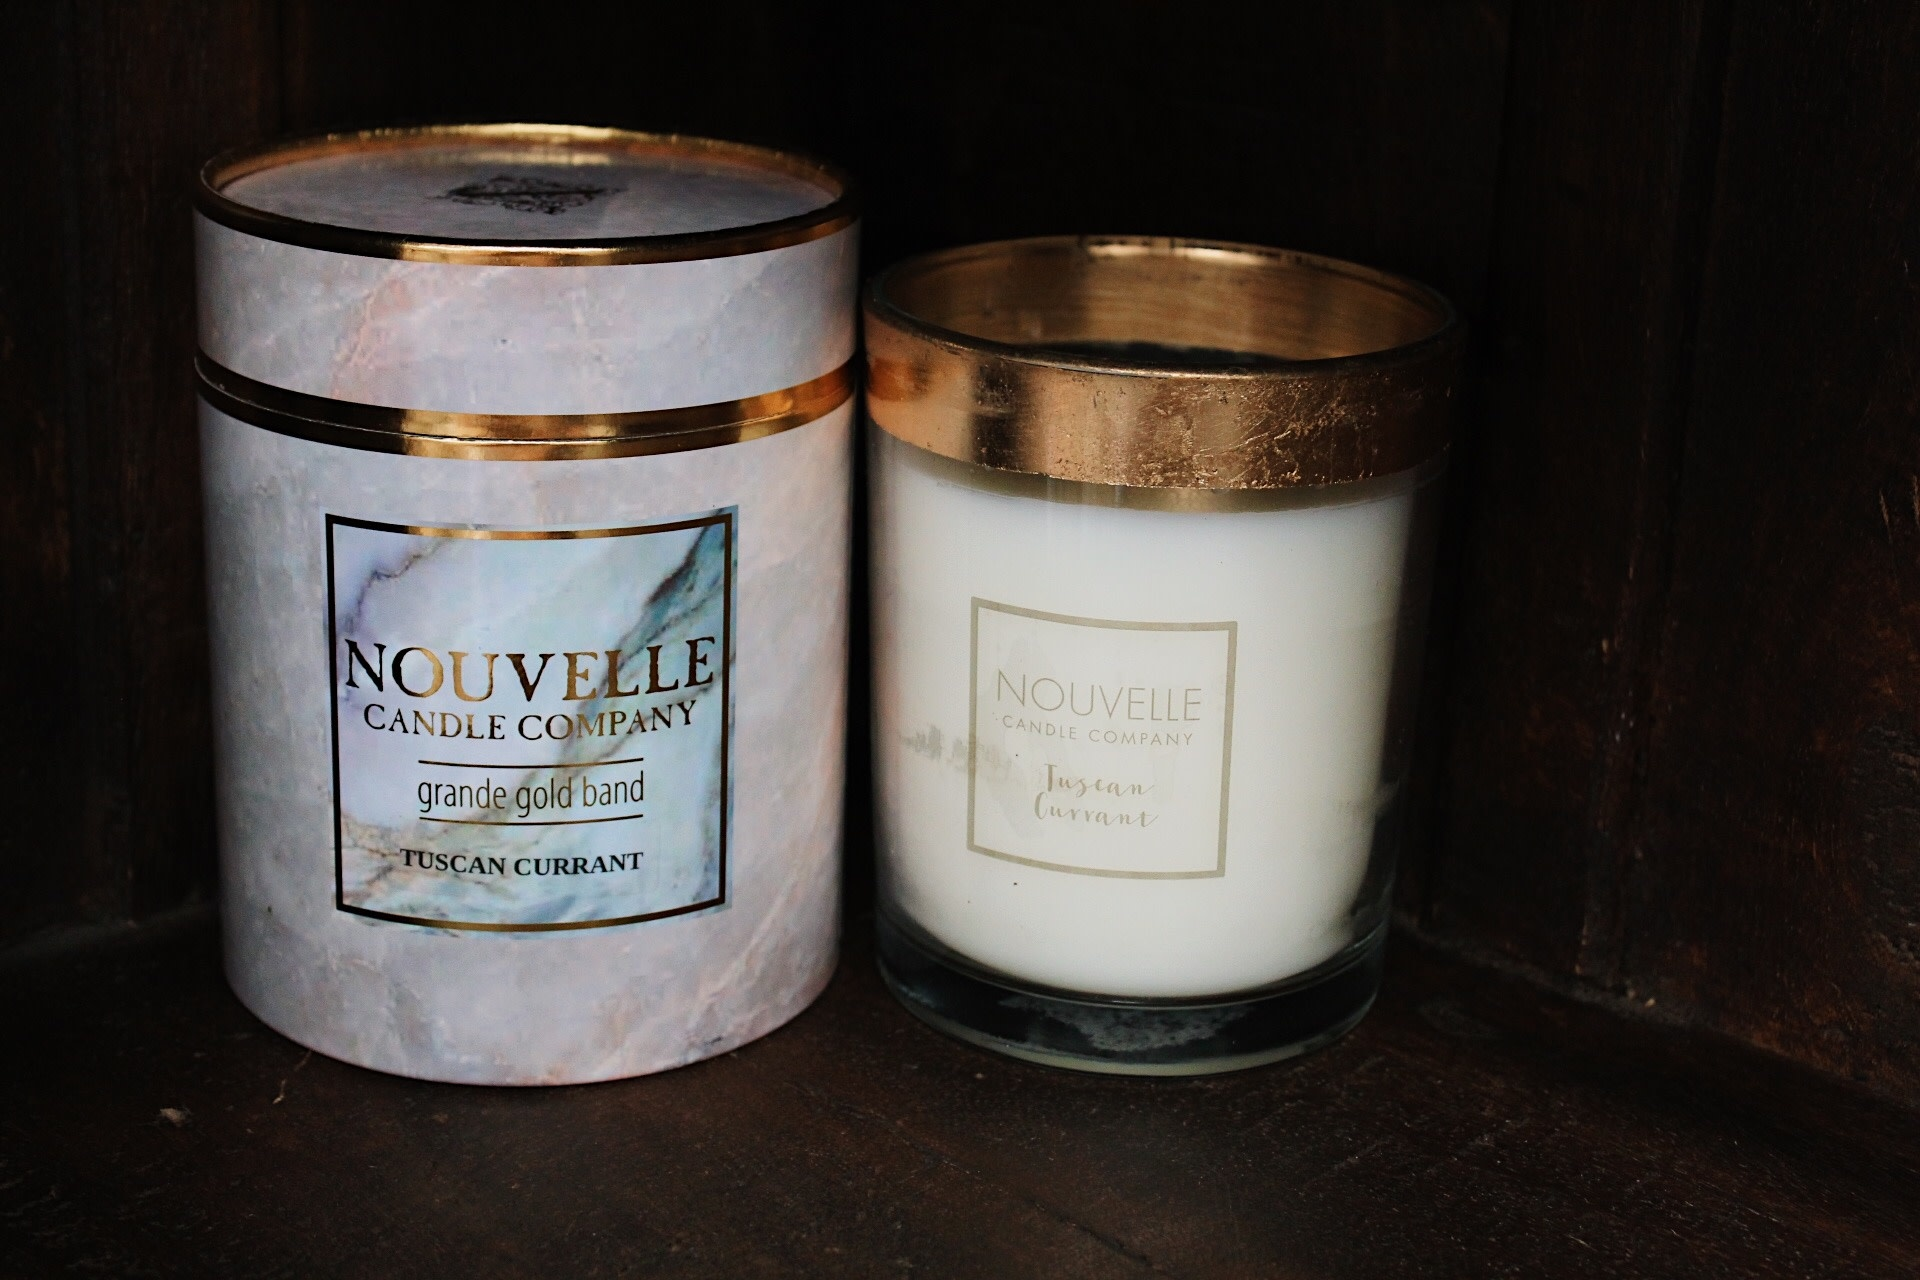 Nouvelle Candle Company Tuscan Currant Grande Gold Band